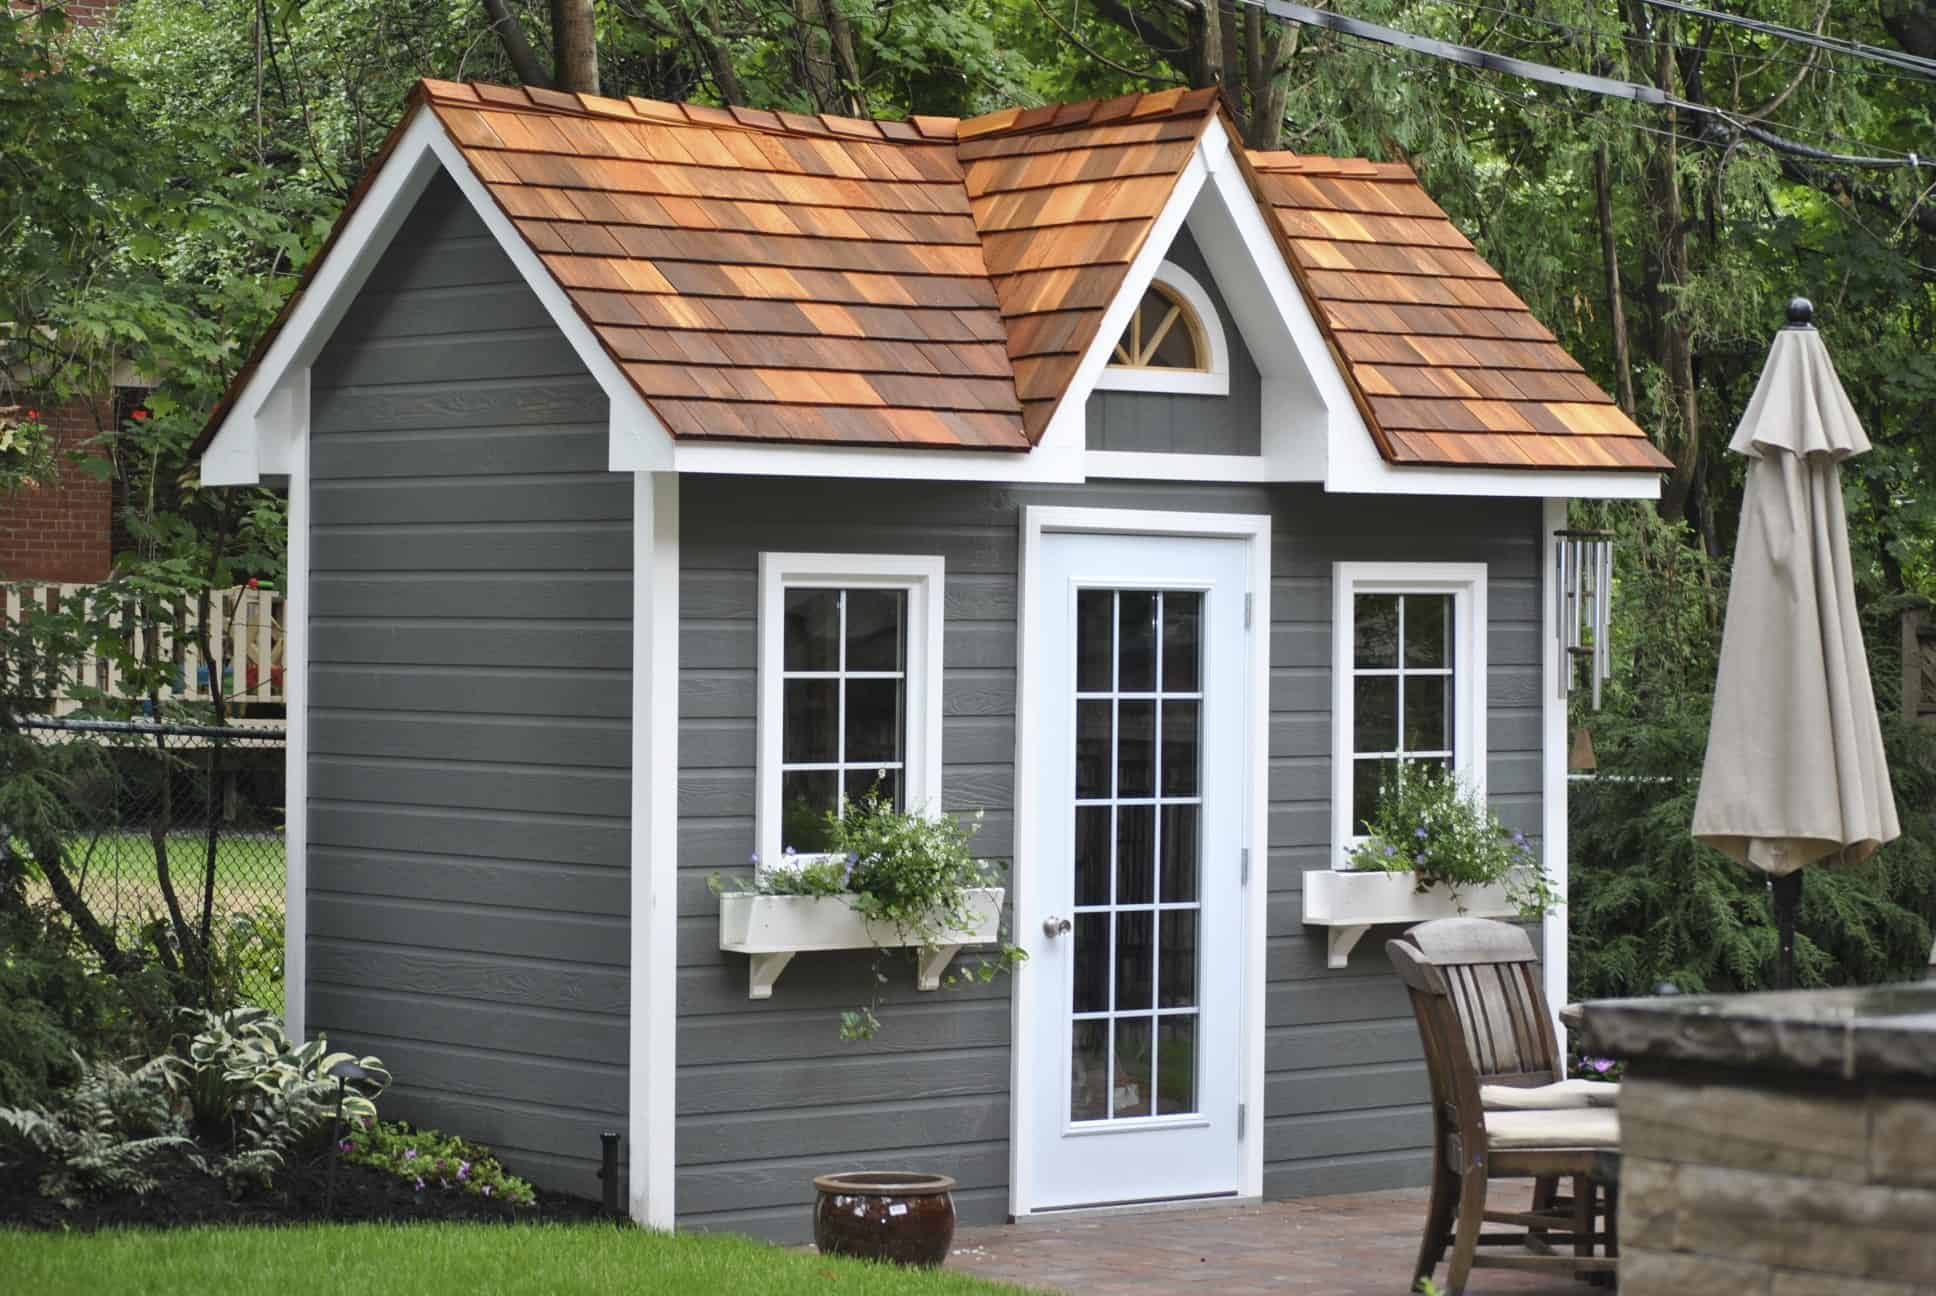 What Are The Best Roofing Materials For Sheds?